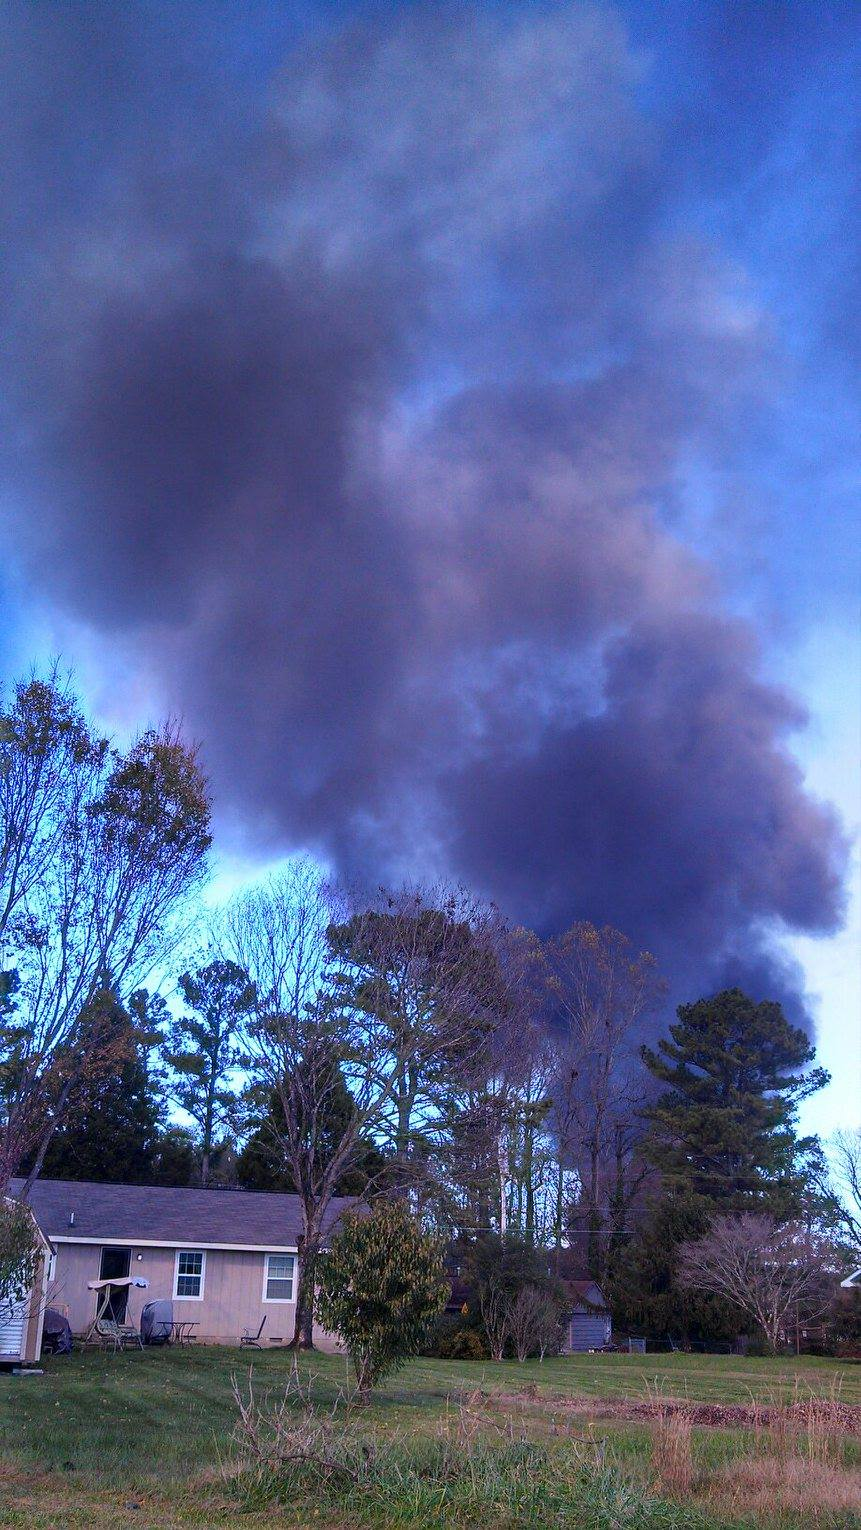 Barwick Fire As Seen From South Chattanooga St Neighborhood / Taylor Hightower